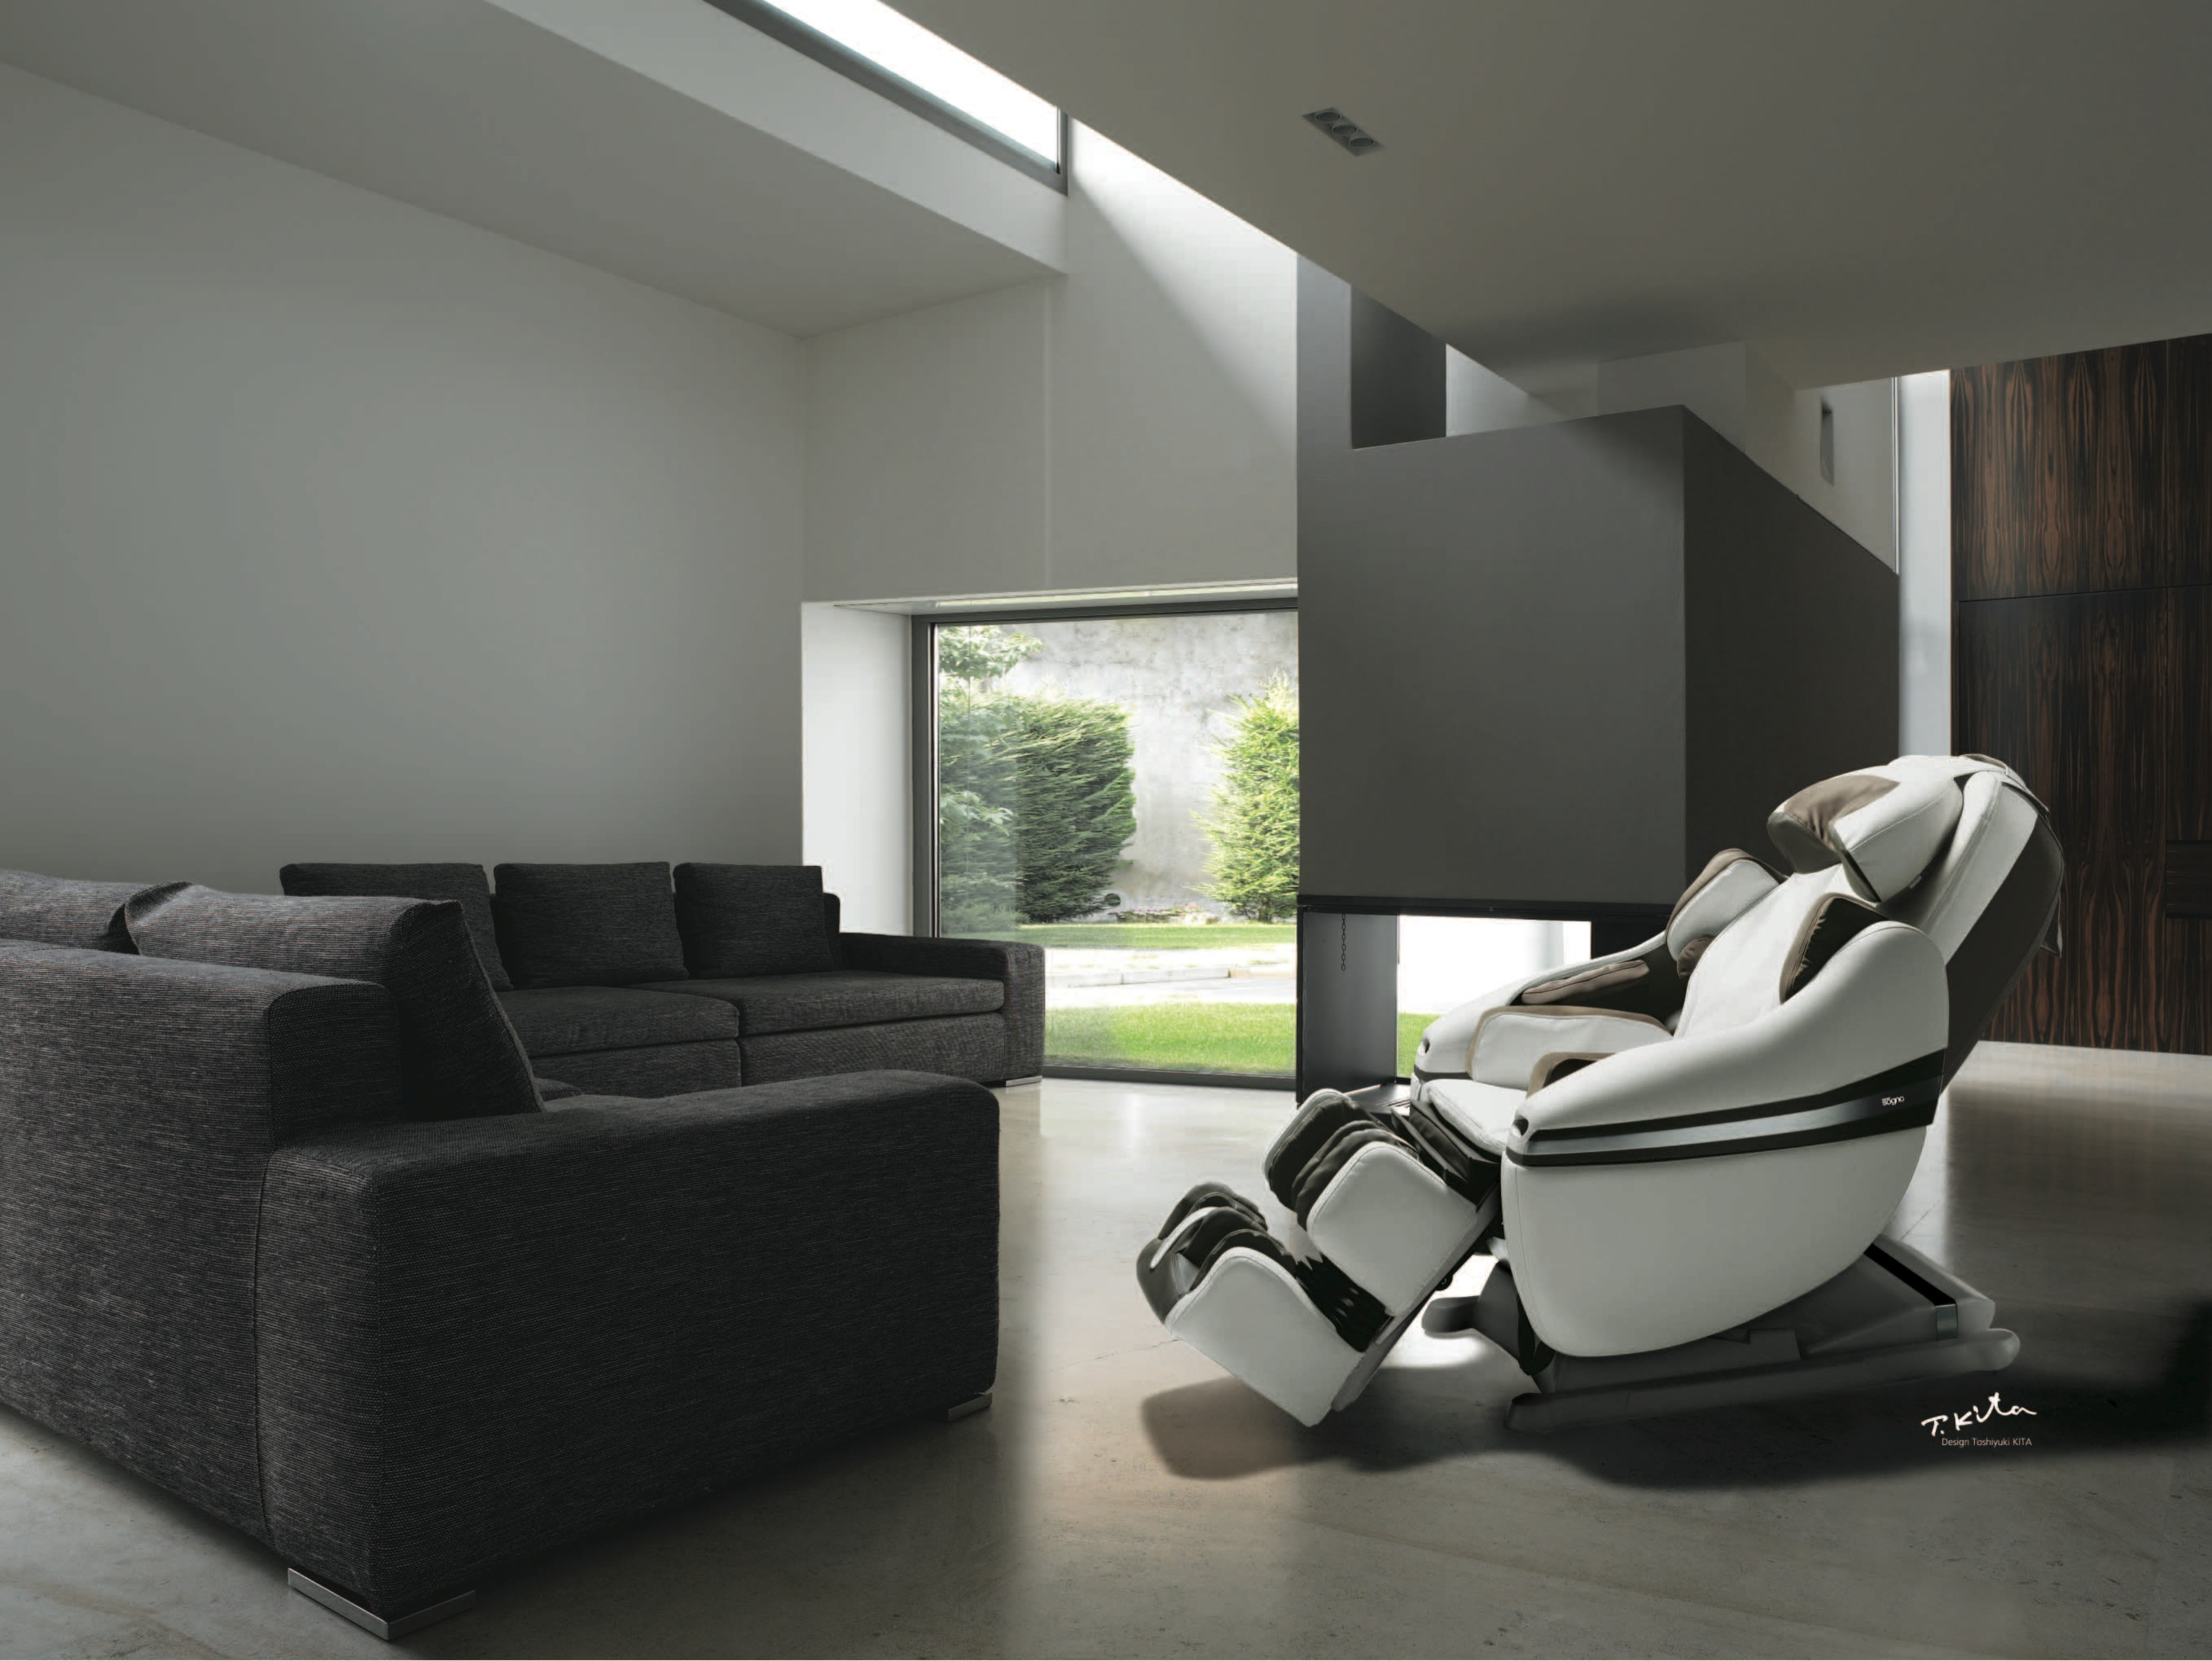 inada announces price increase for sogno dreamwave massage chair